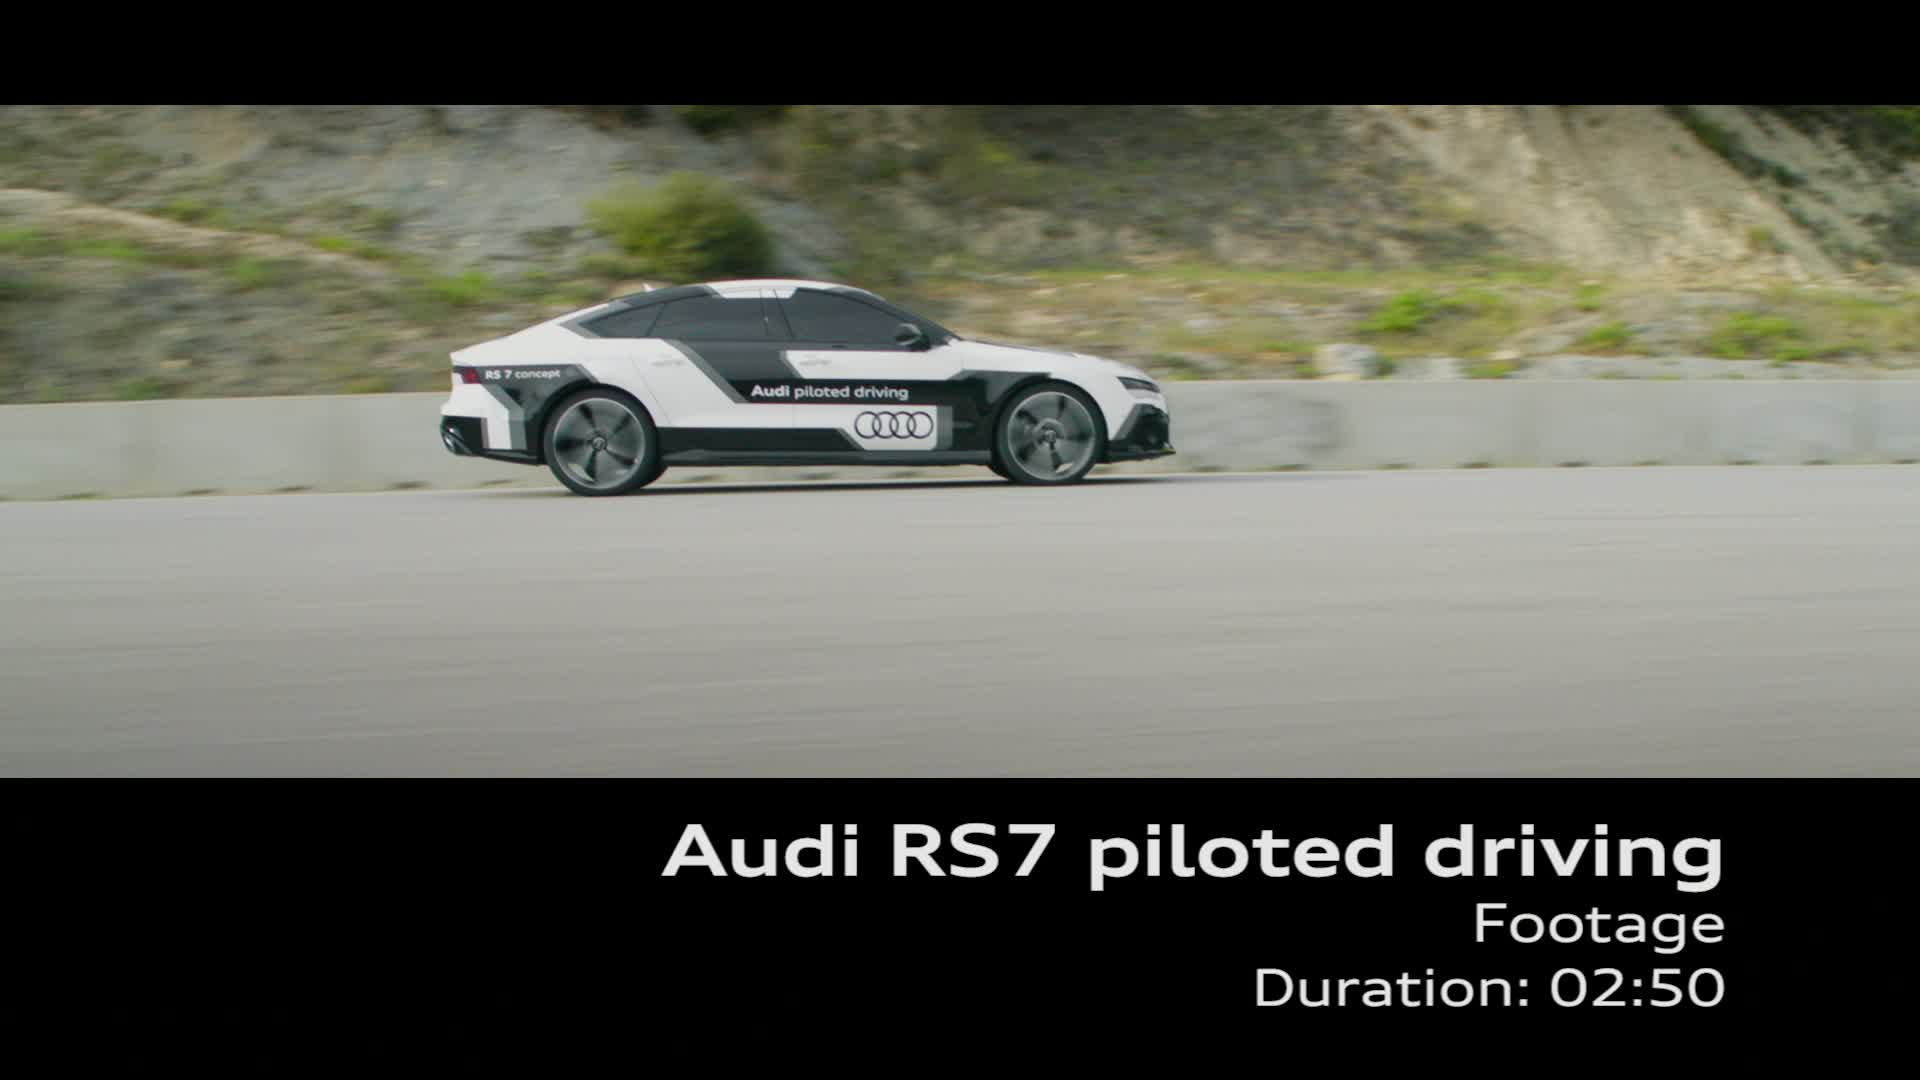 Audi RS 7 piloted driving concept - Footage Barcelona